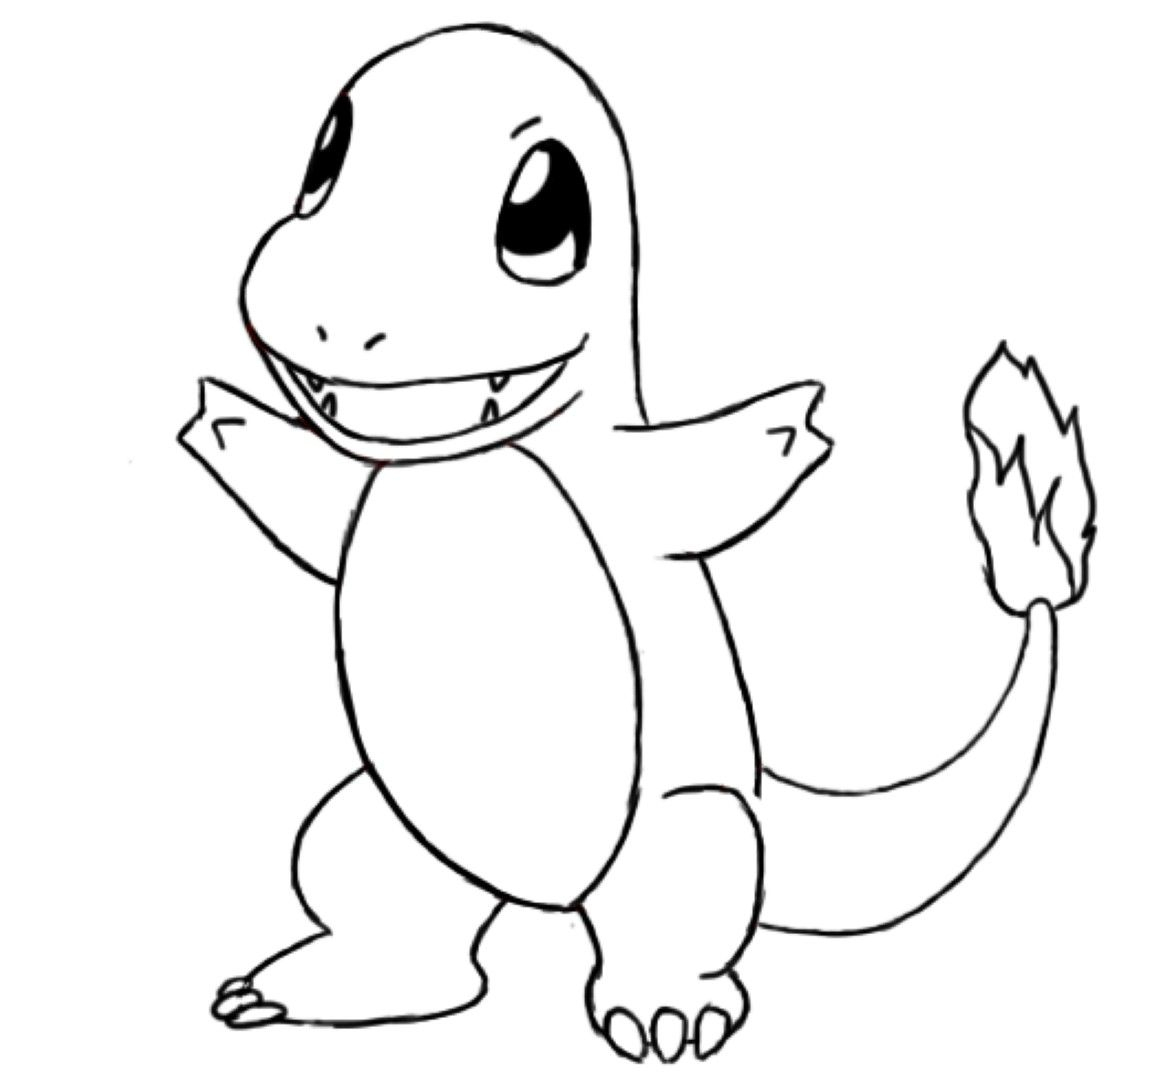 Charmander Coloring Page Pokemon Charmander Coloring Pages Coloring Home